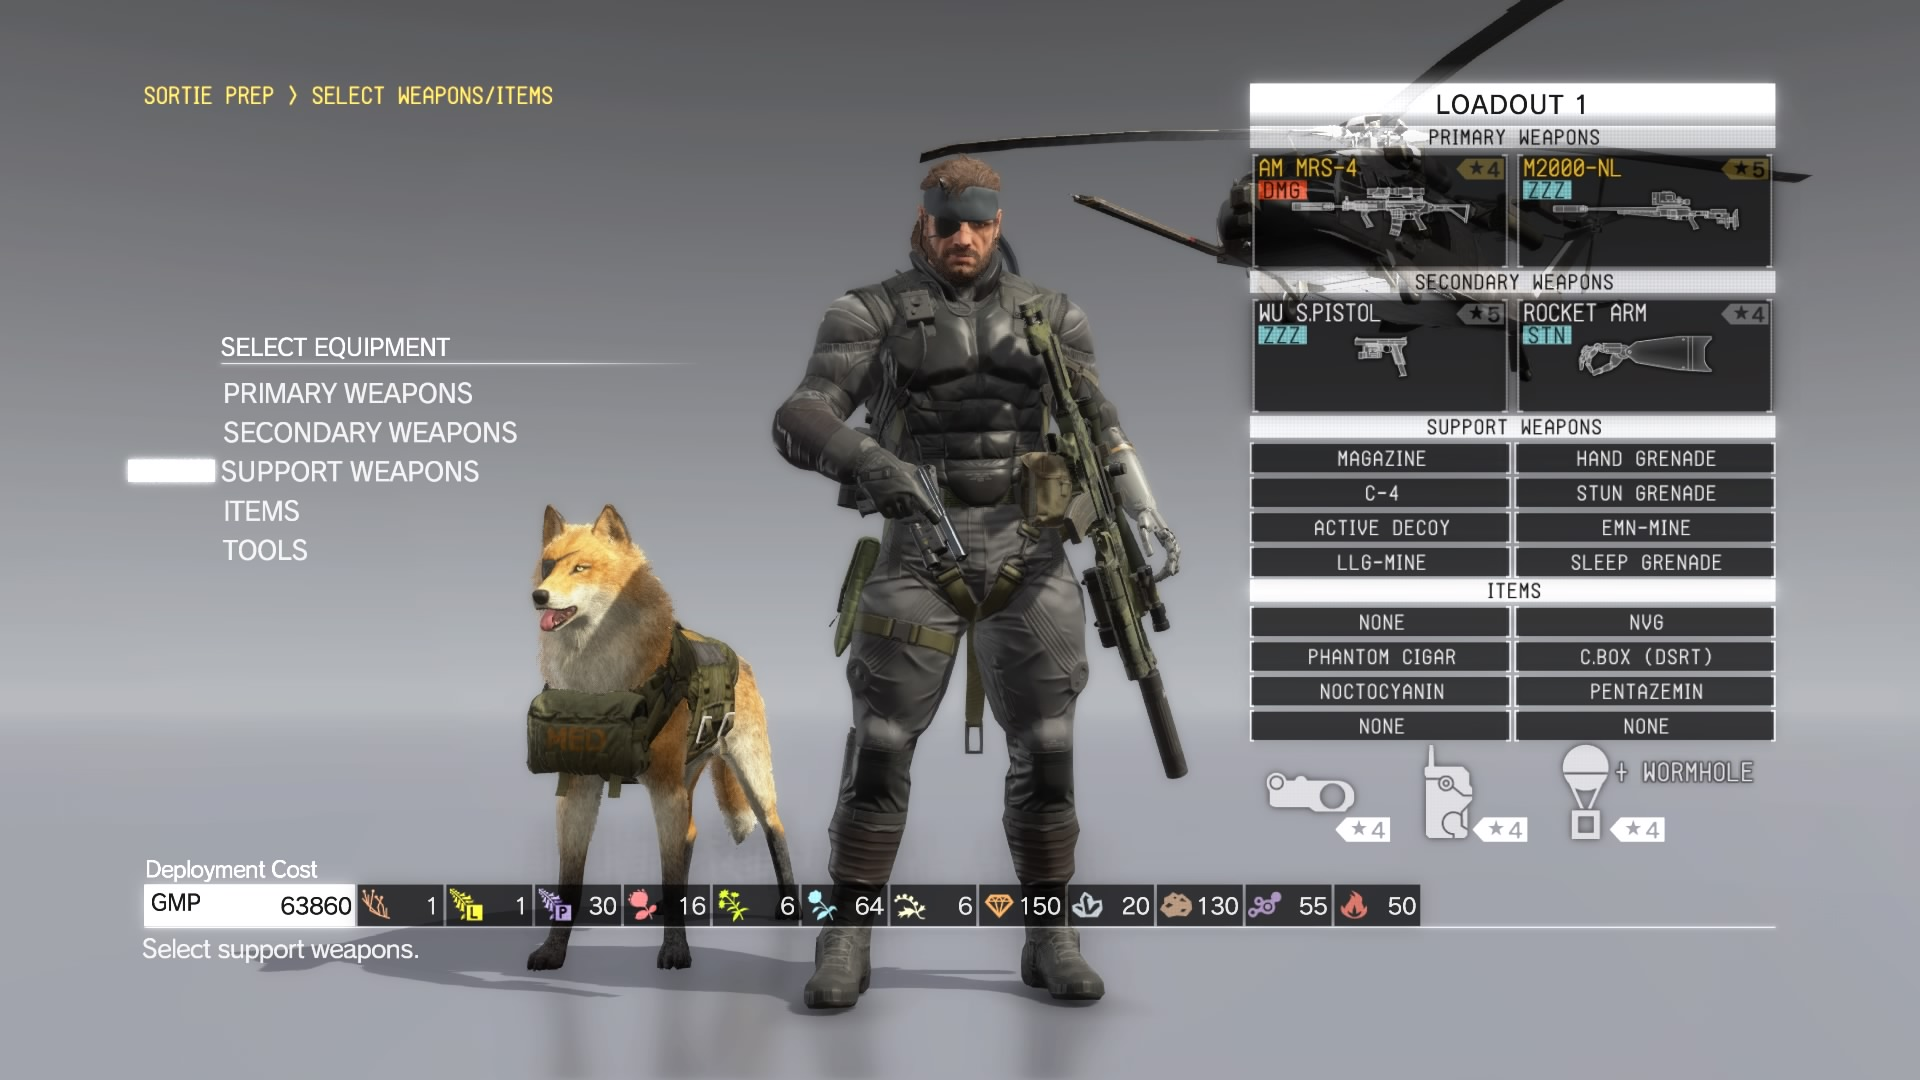 METAL GEAR SOLID V: THE PHANTOM PAIN_Loadout